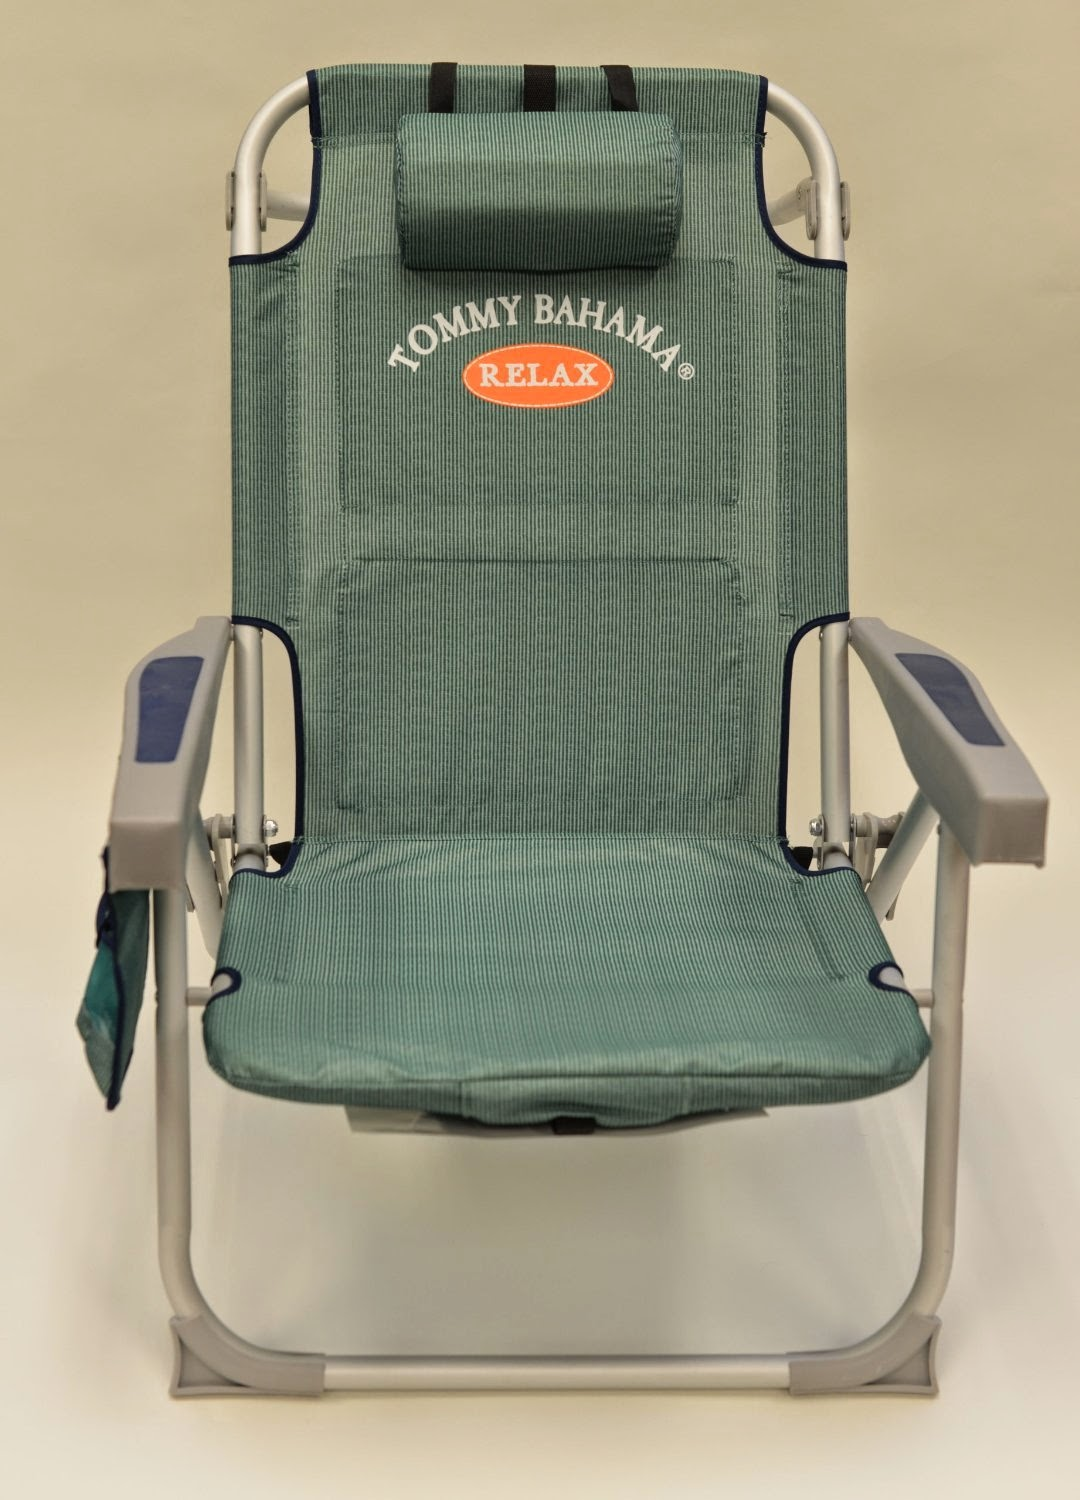 Tommy Bahama Cooler Chair Covers By Sylwia Reviews Cheap Beach Chairs